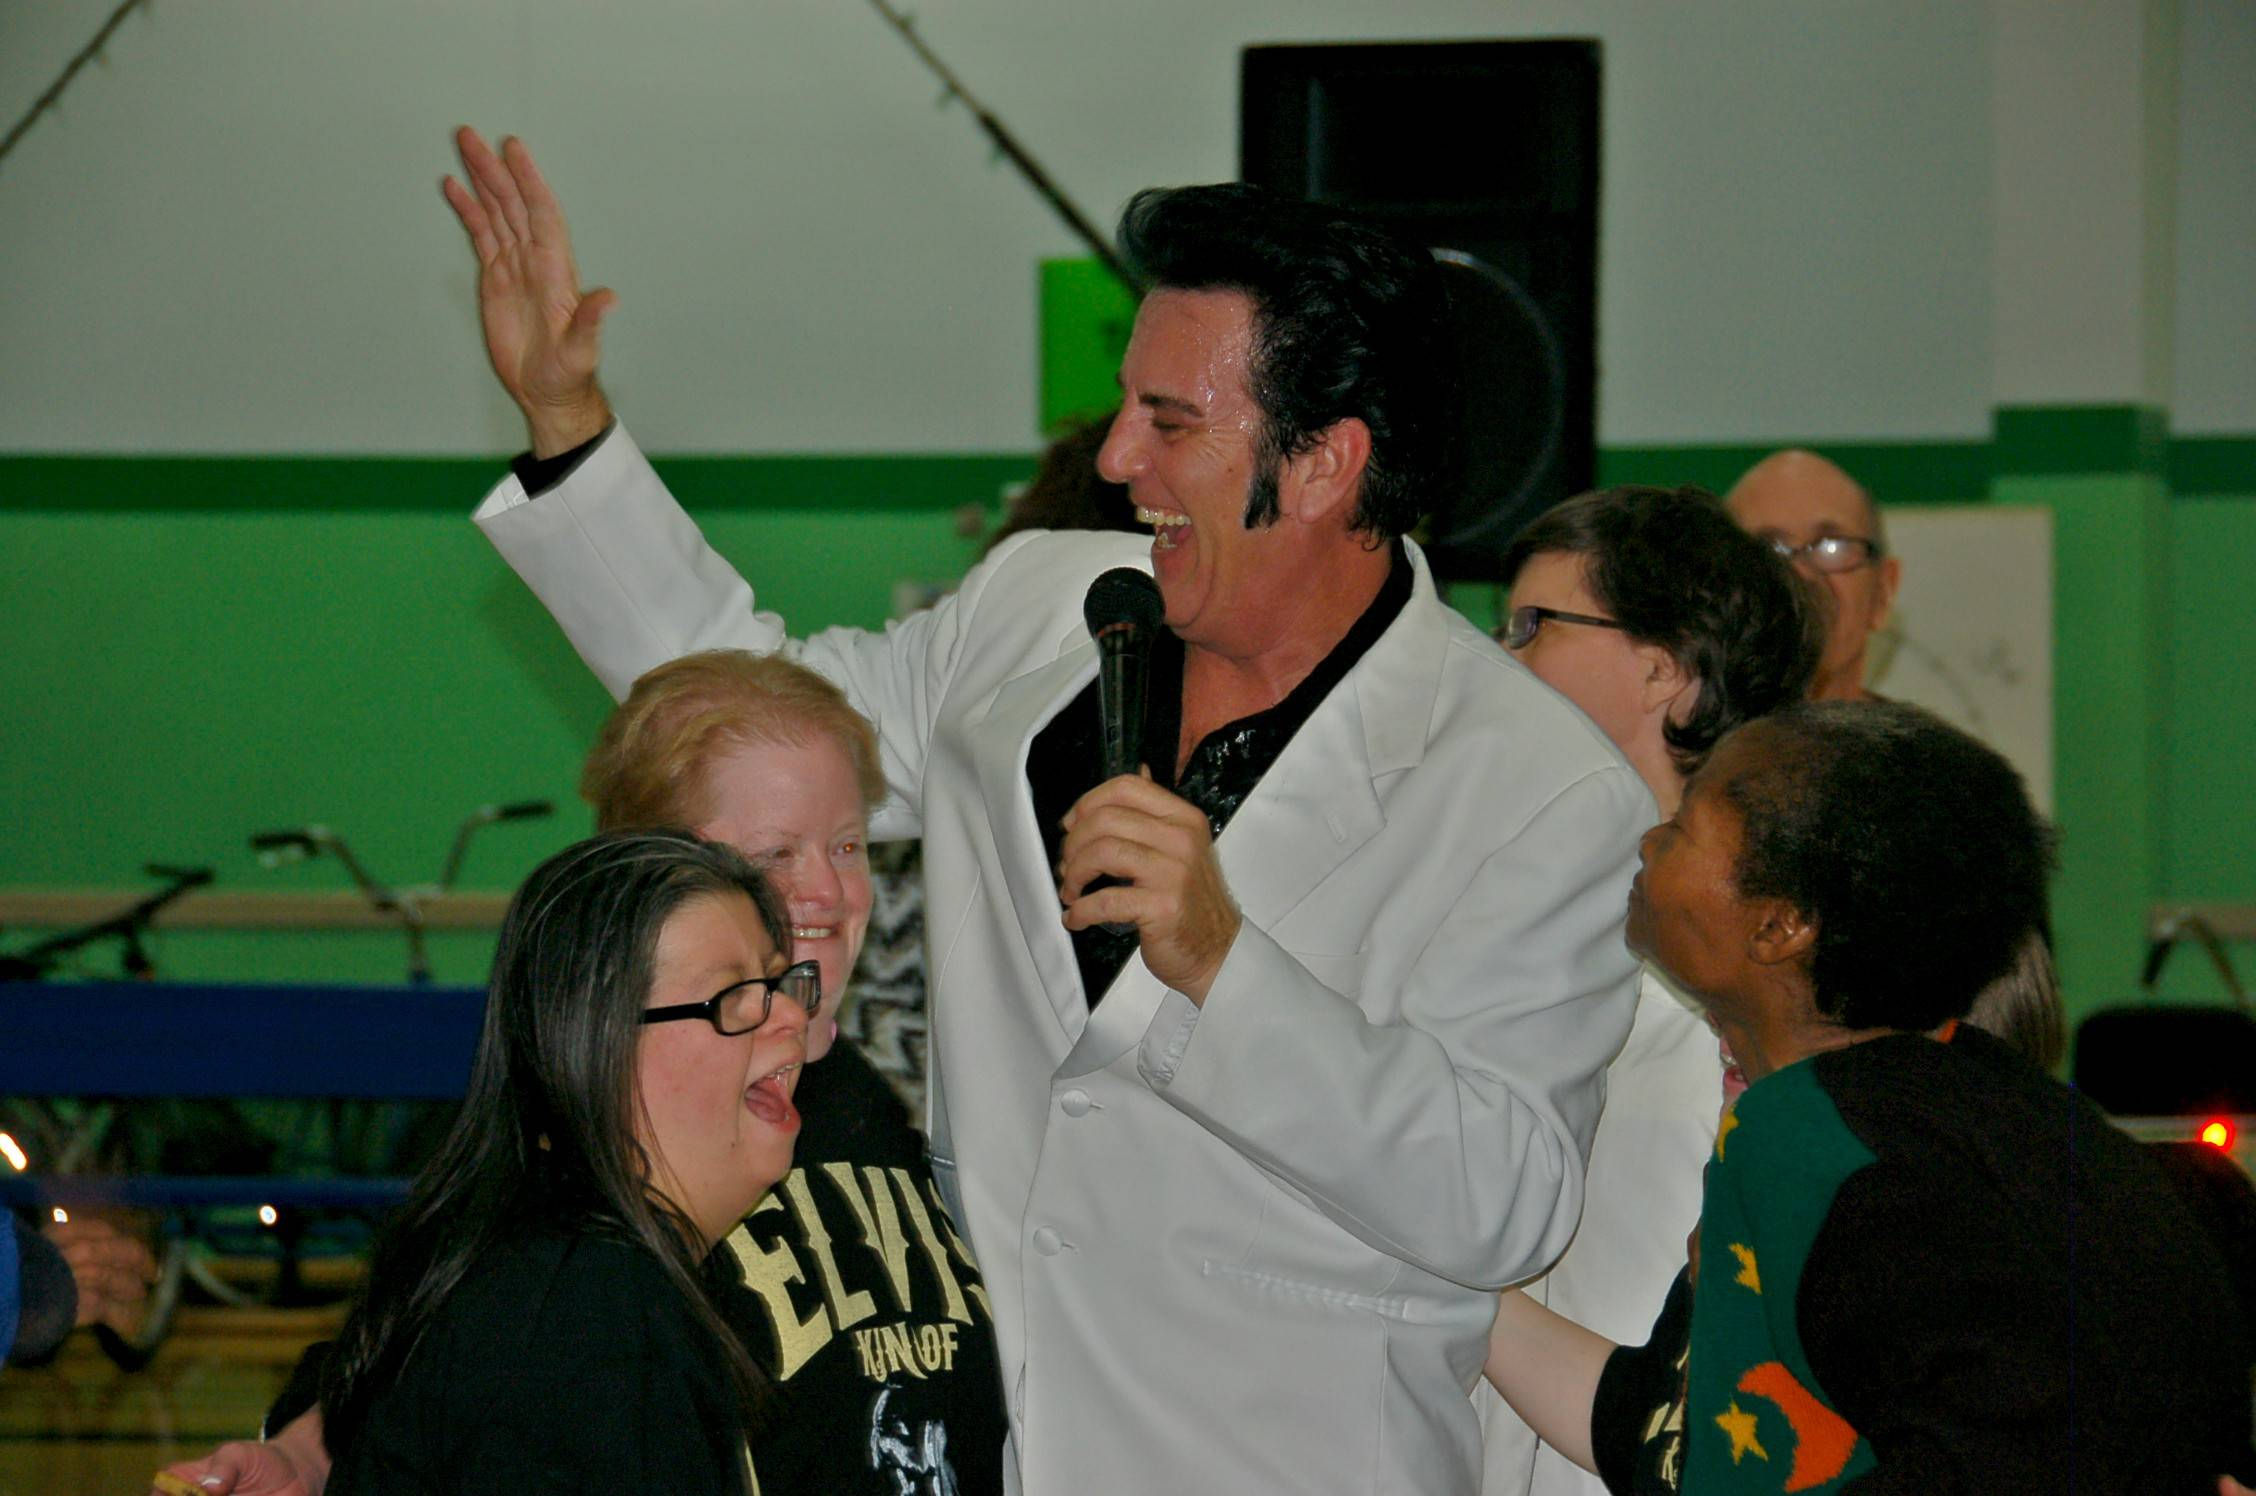 Elvis club members sing along with tribute artist Travis Morris in celebration.Marisa LaBello